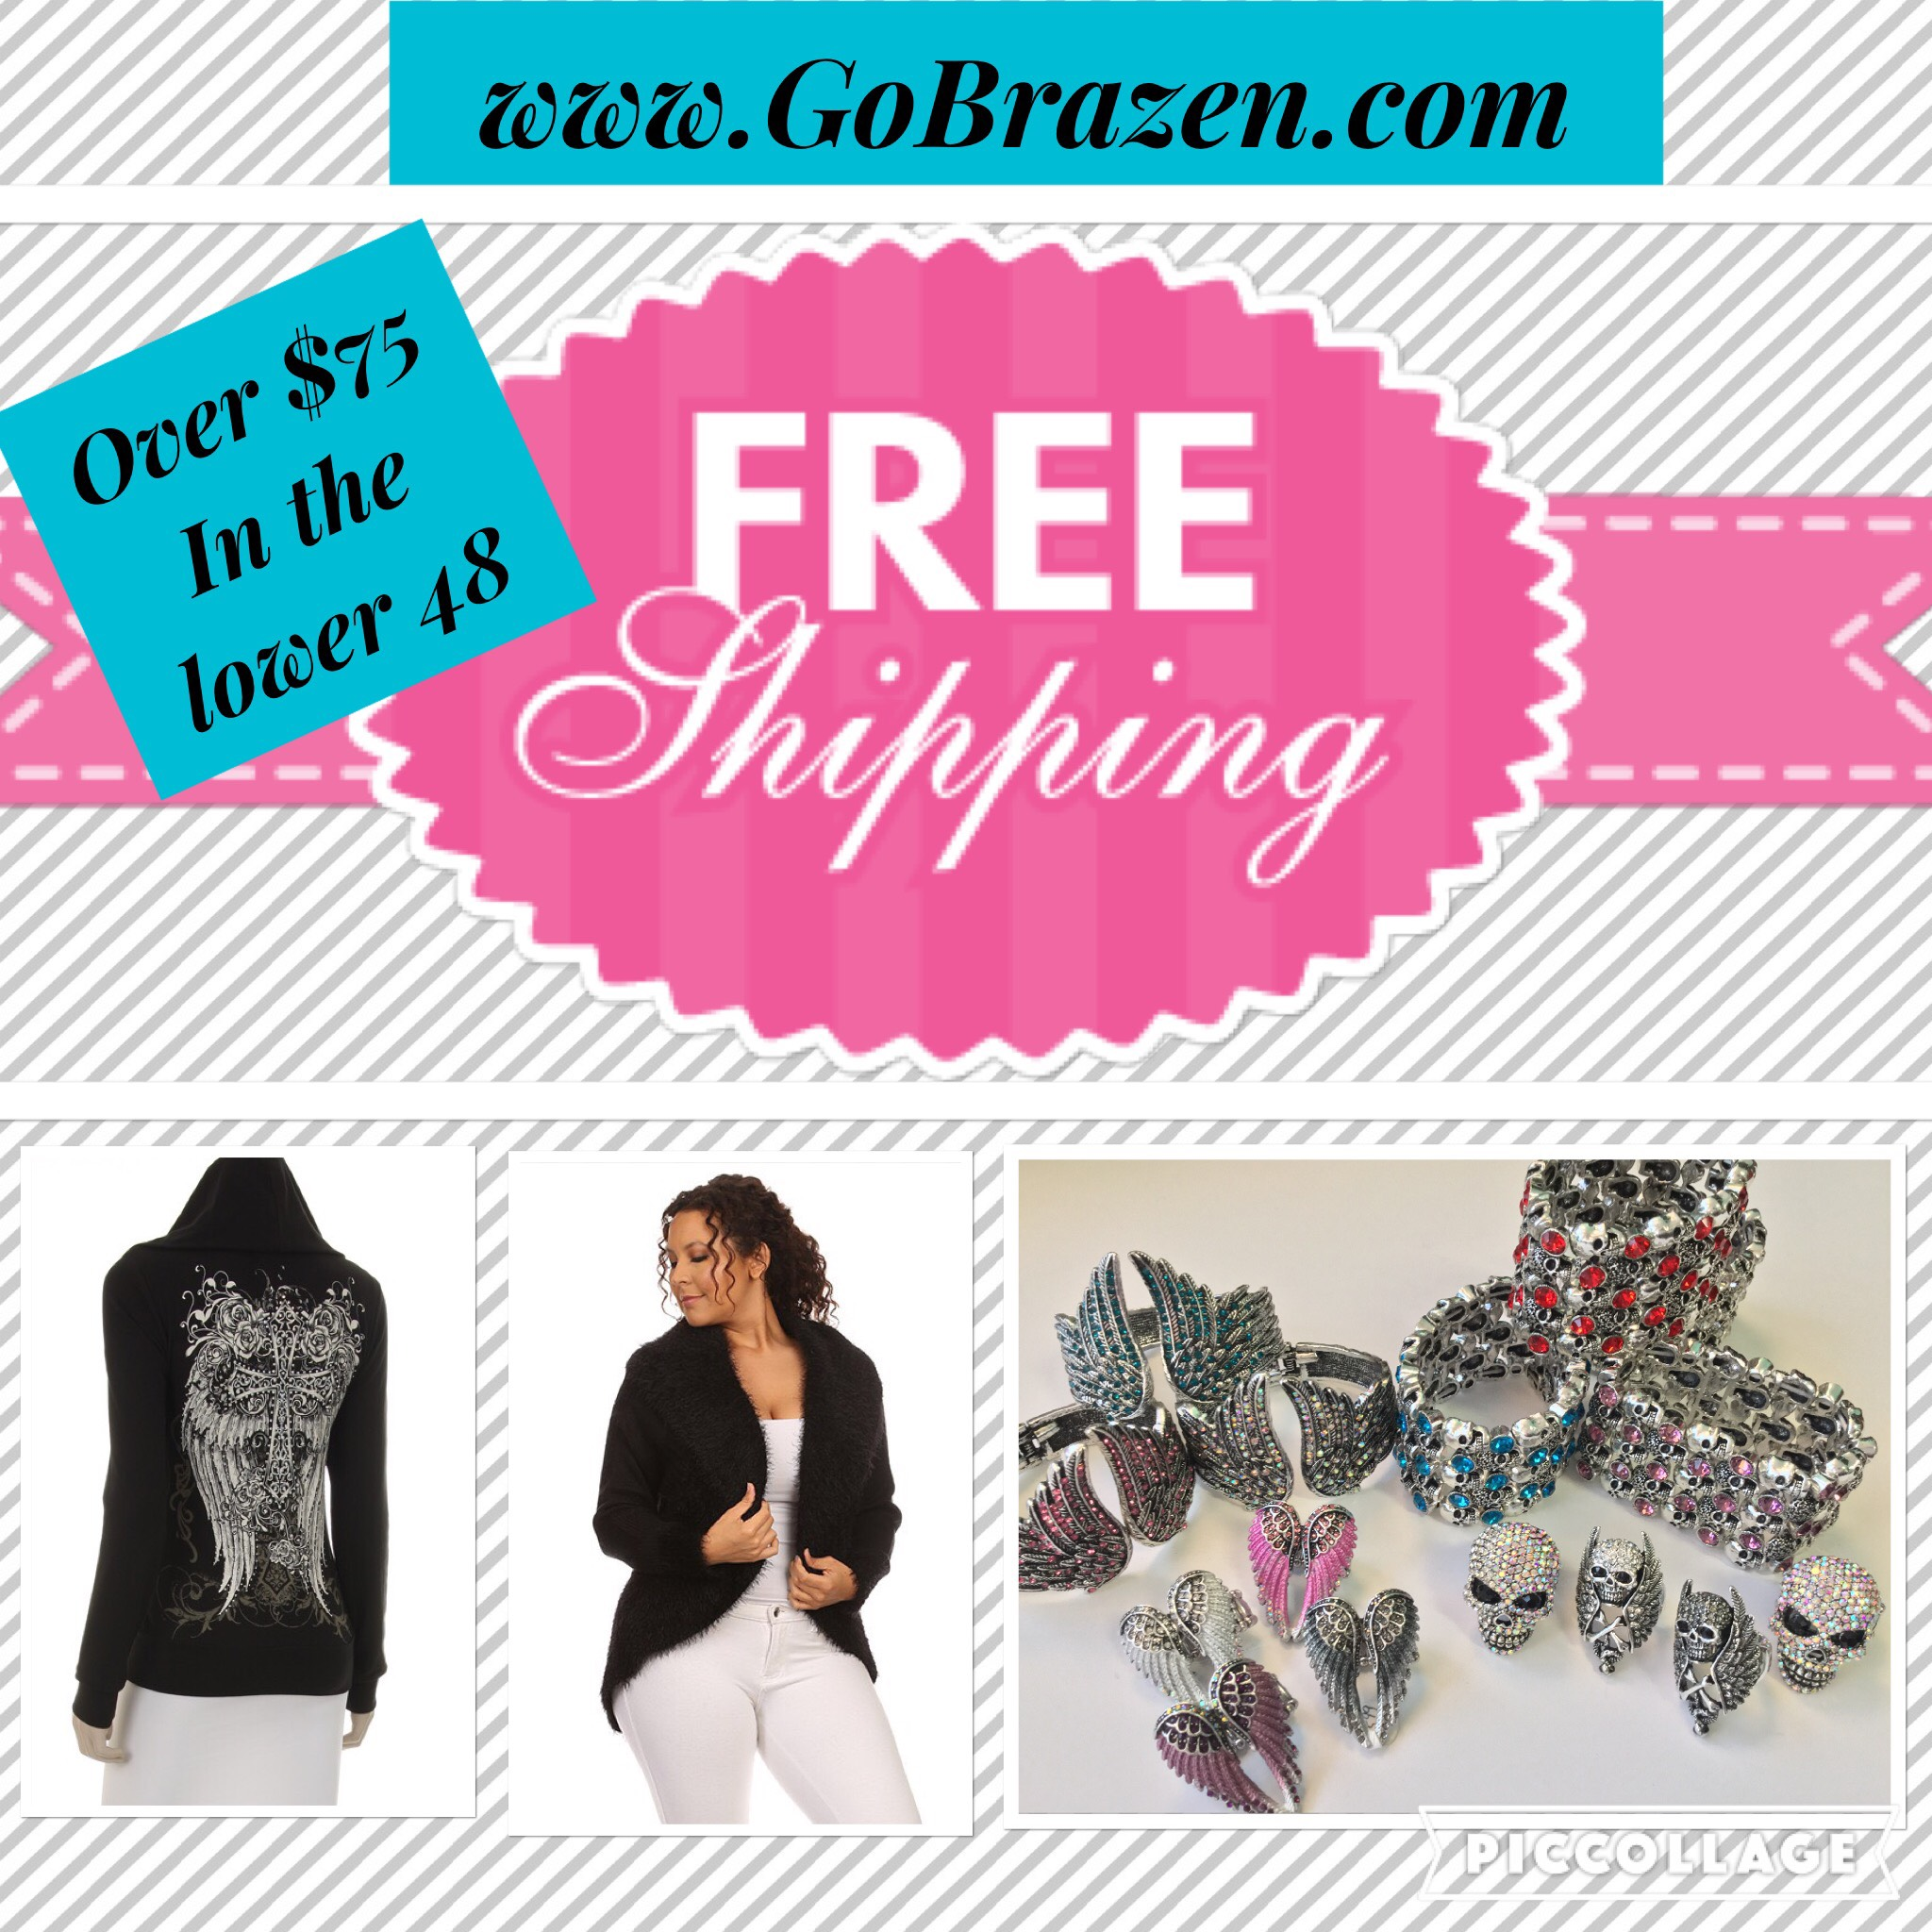 Free Shipping on ALL orders $75 or more Through 11/30/16